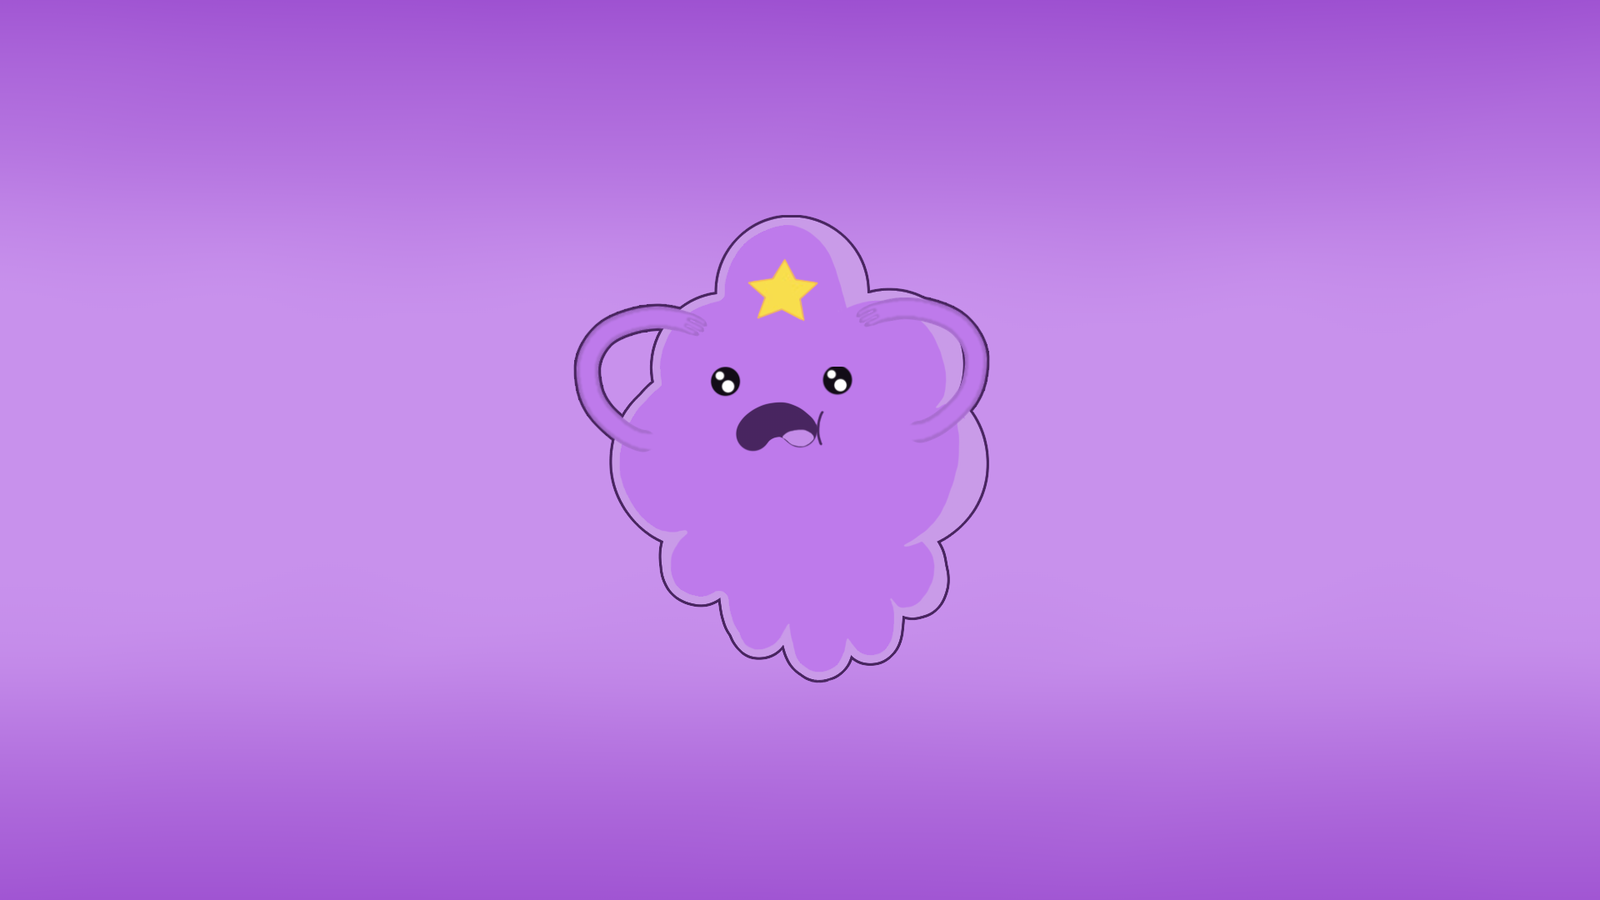 Oh My Glob! by Winkle92 on DeviantArt